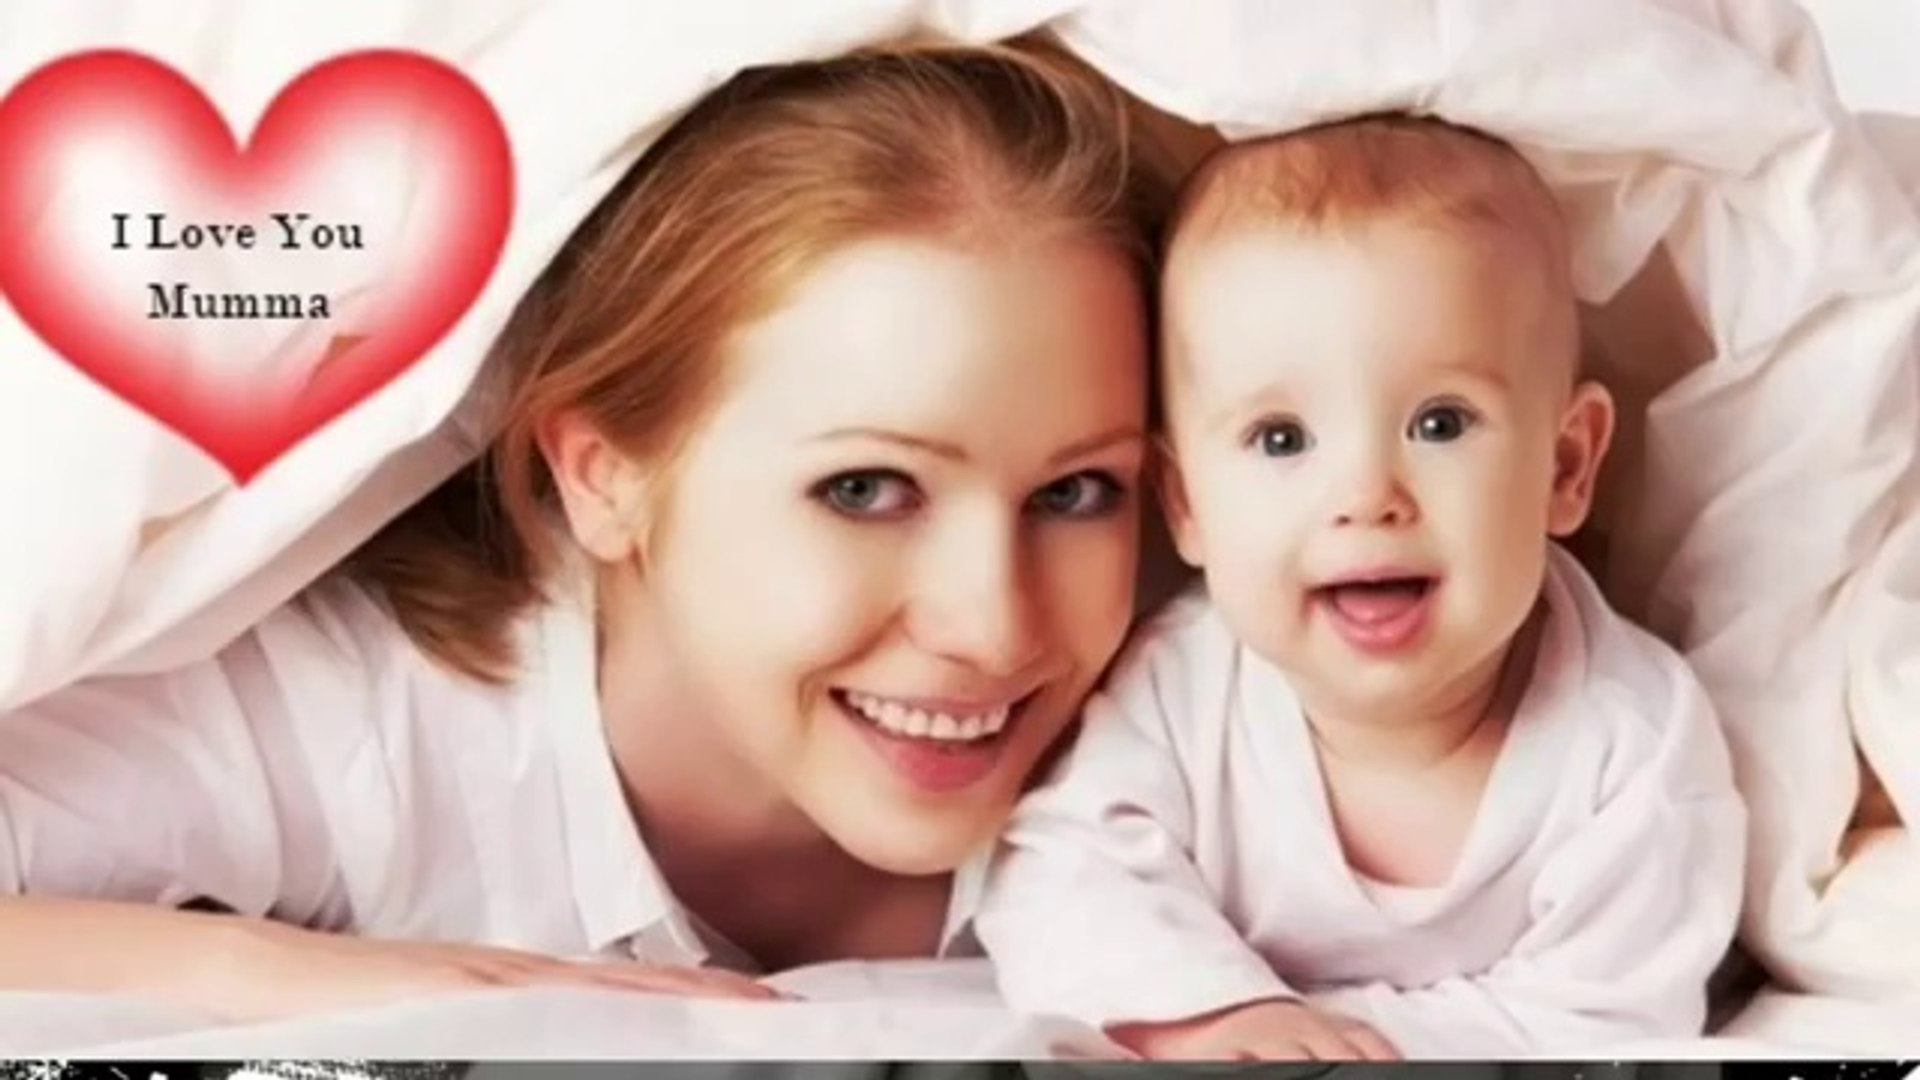 Mothers Day Special Whatsapp Status Video 2018 - Whatsapp Status For Mom - Maa - Mother - Mummy